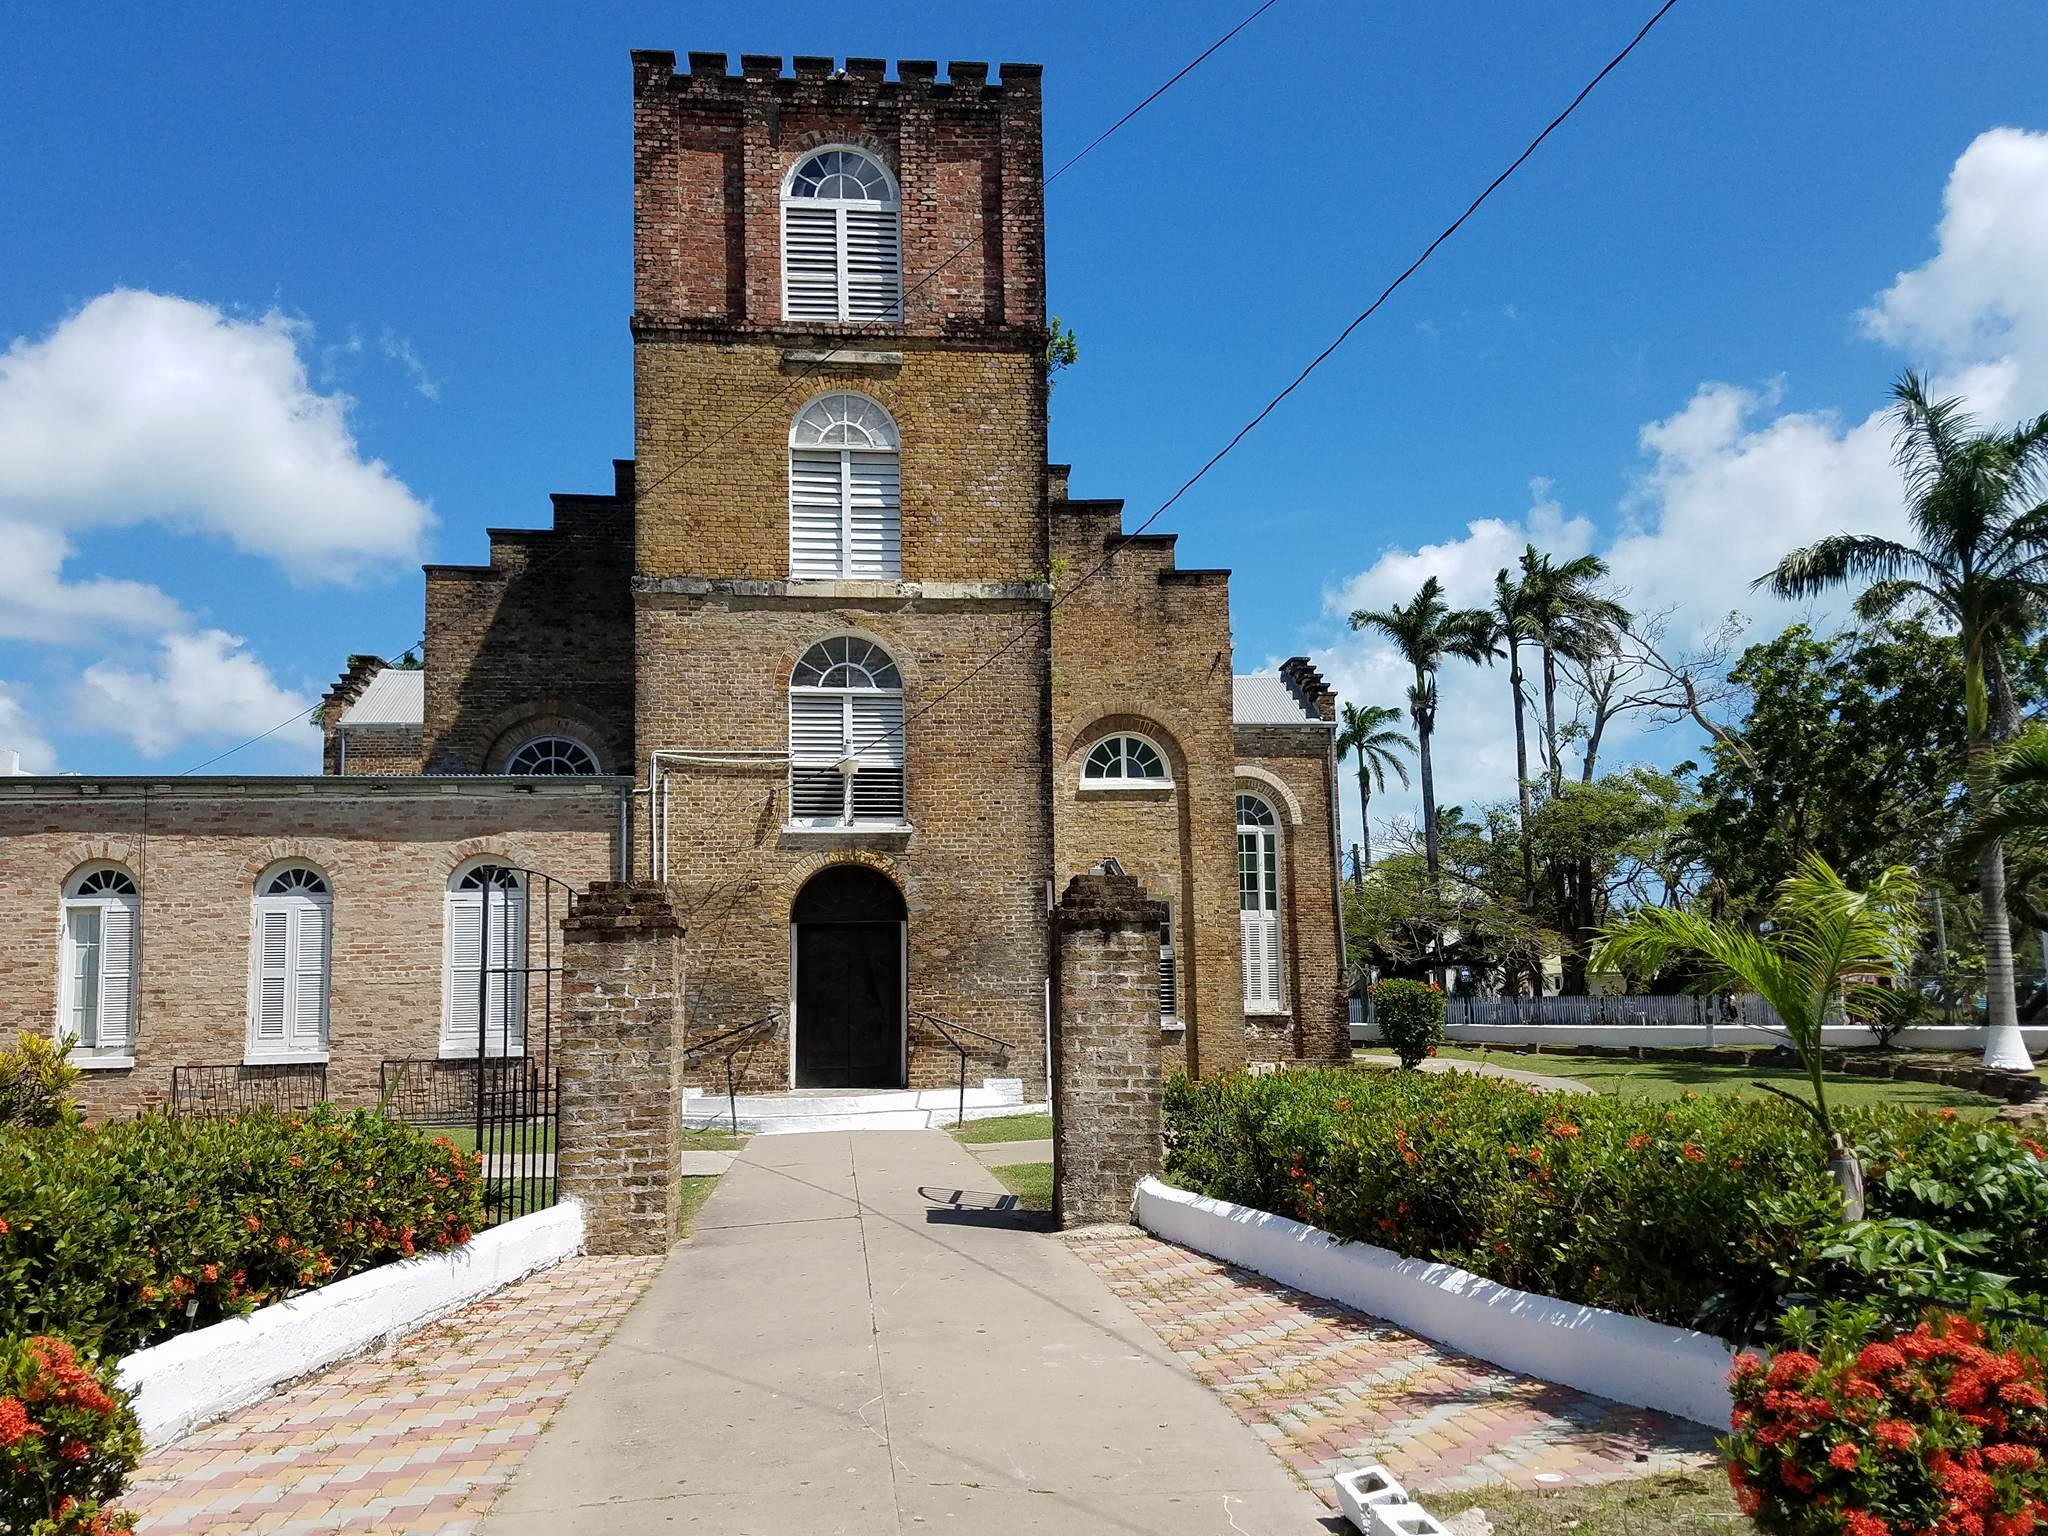 Clue number 1: Built from bricks brought from England as a ship's ballast, St. John's Cathedral is the oldest Anglican church in Central America. In days past it served as venue for the crowning of kings of the mosquito coast. **Photo credit: Jennifer Young**